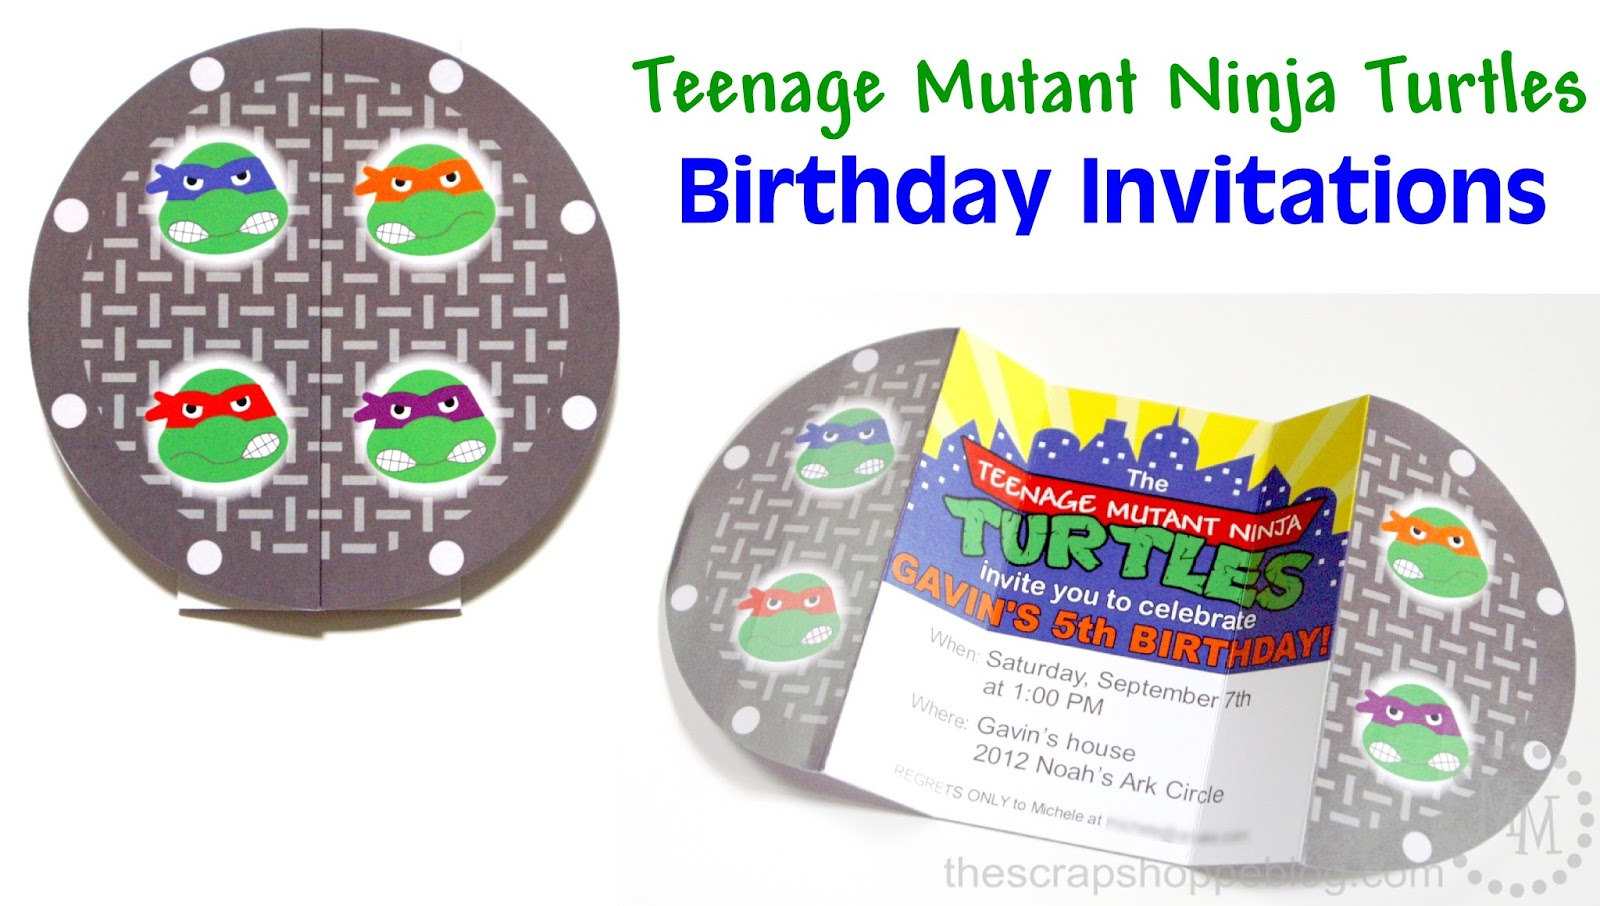 teenage mutant ninja turtles tmnt birthday invitations  the, Birthday invitations